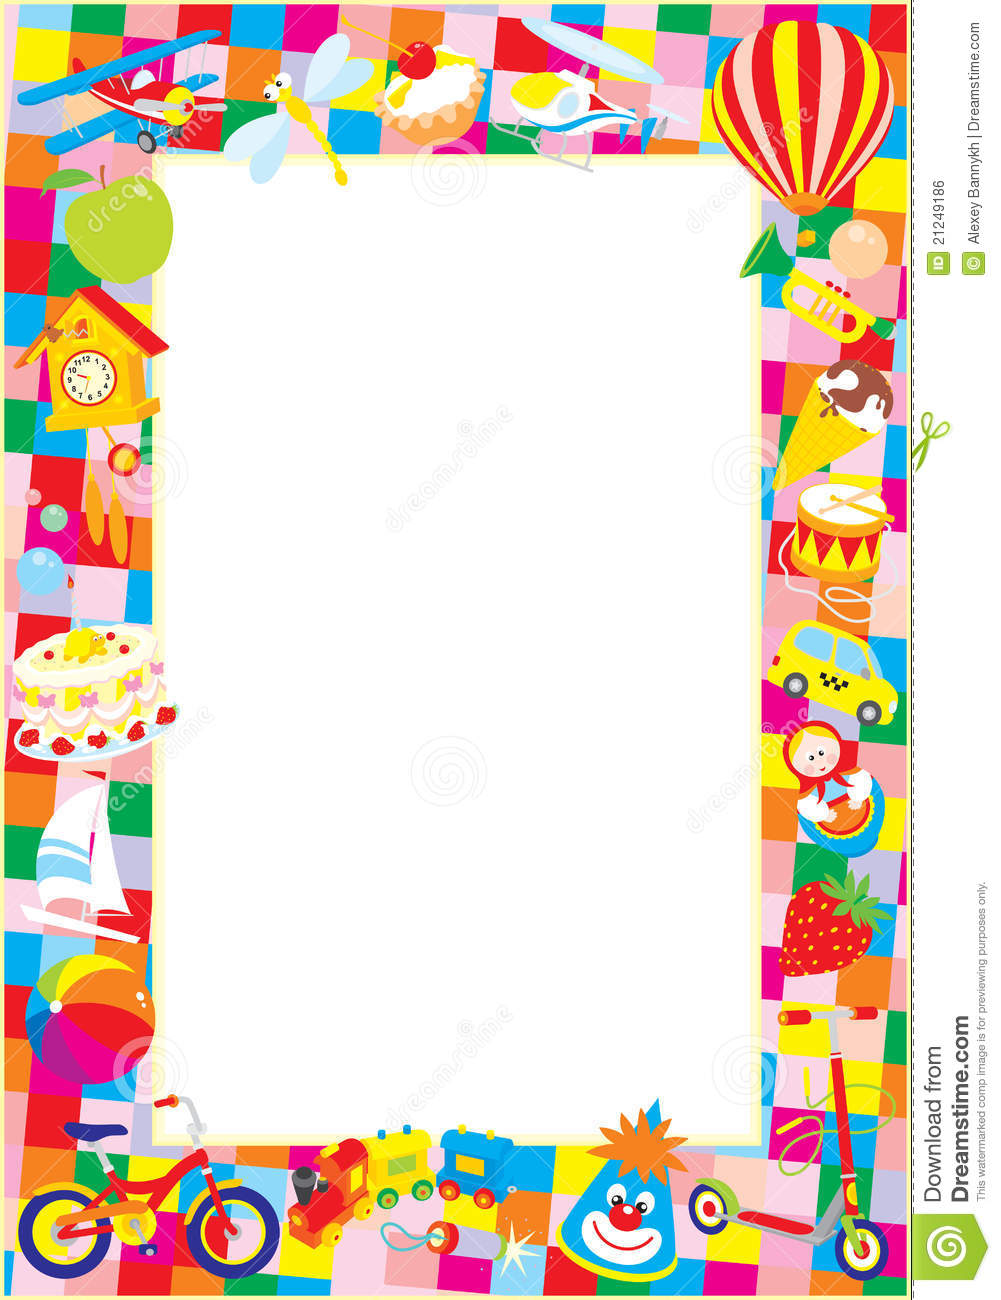 Boy Toys Border : Toy border stock illustration of frame